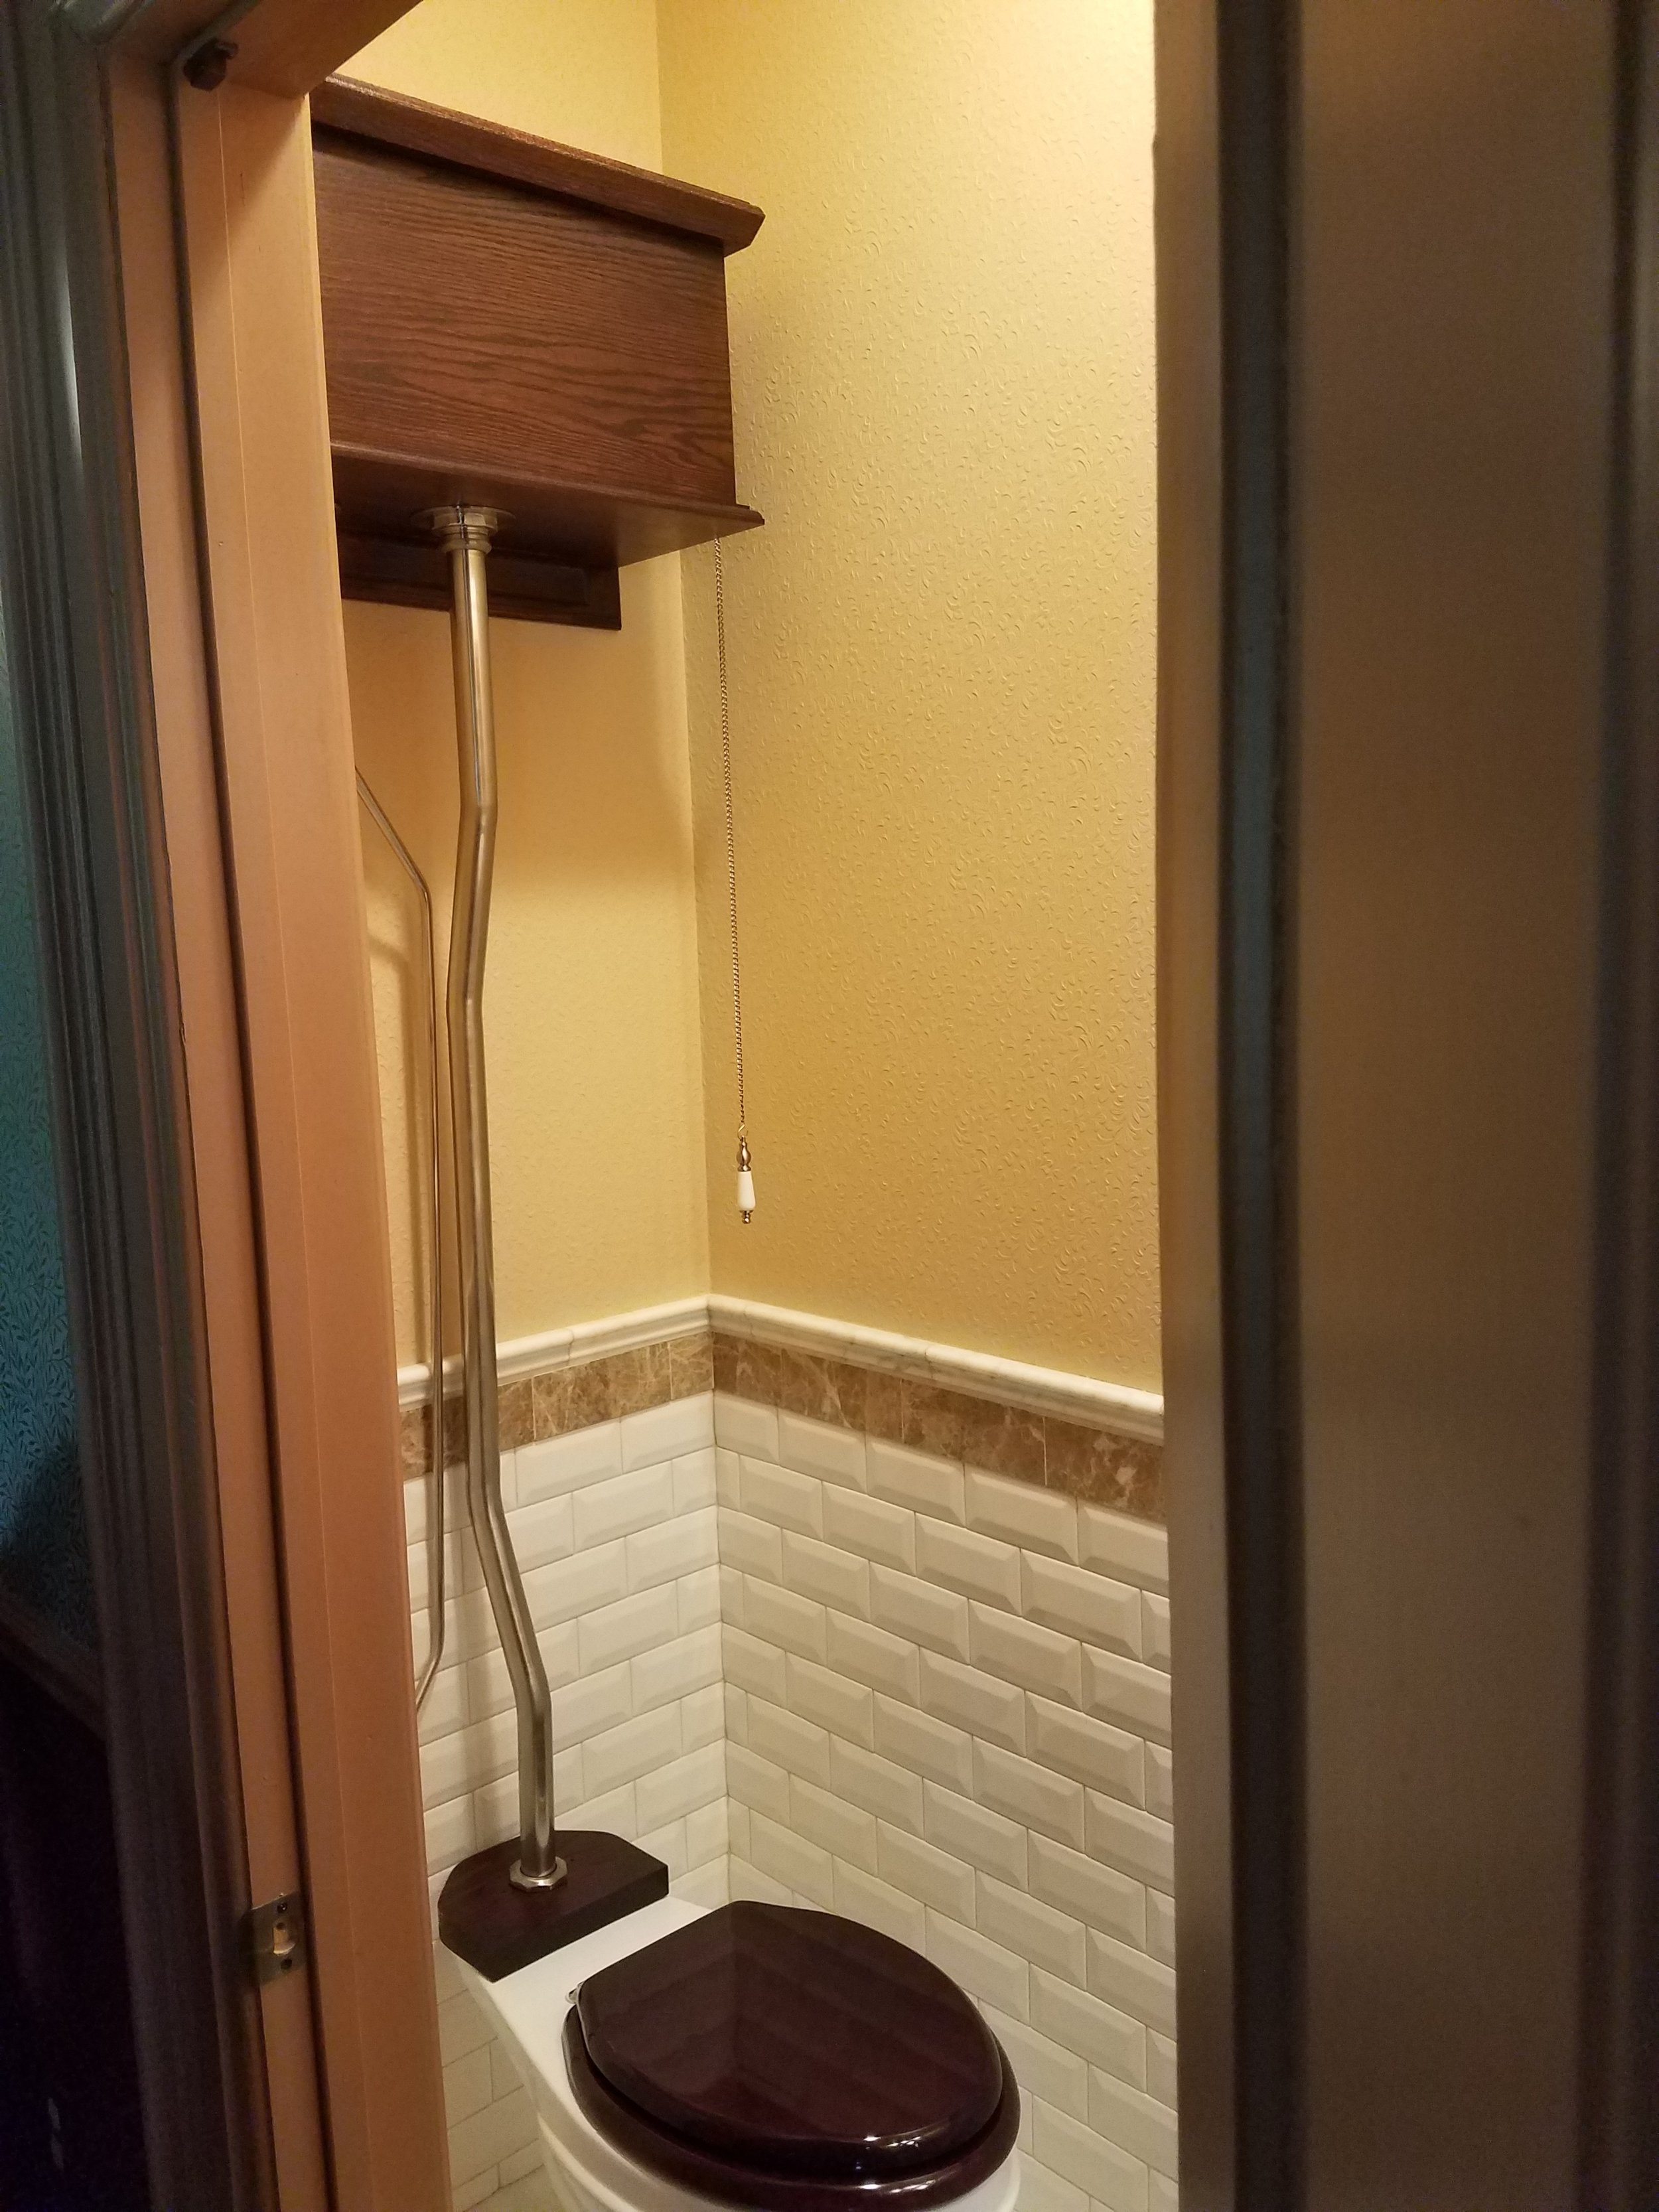 High back pull chain toilet.